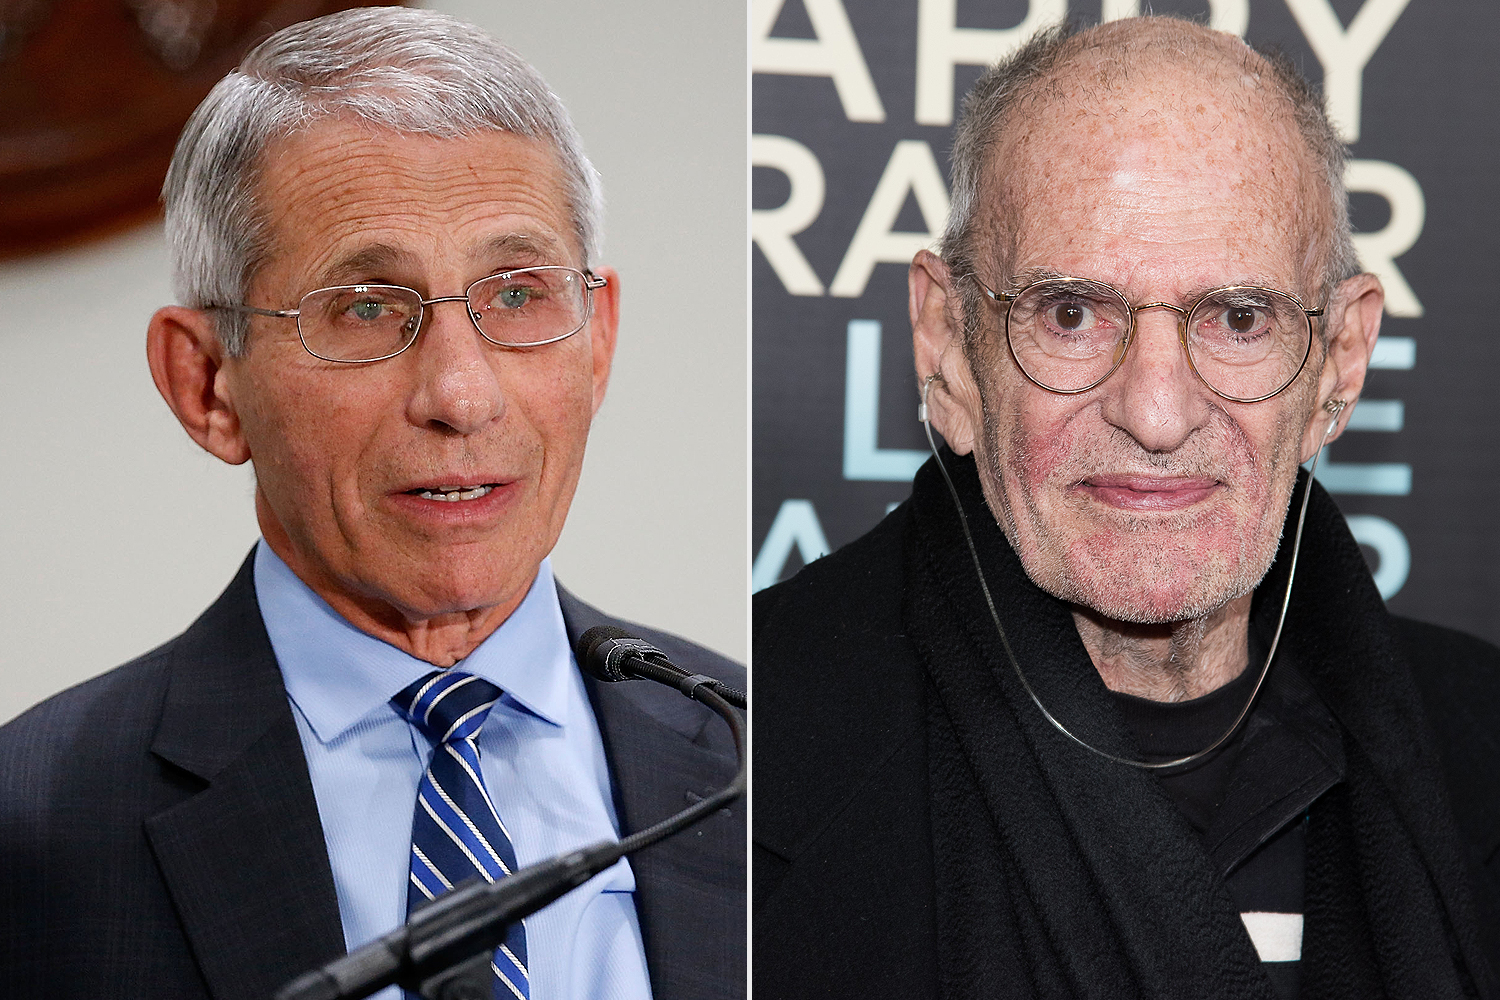 Anthony Fauci, Larry Kramer